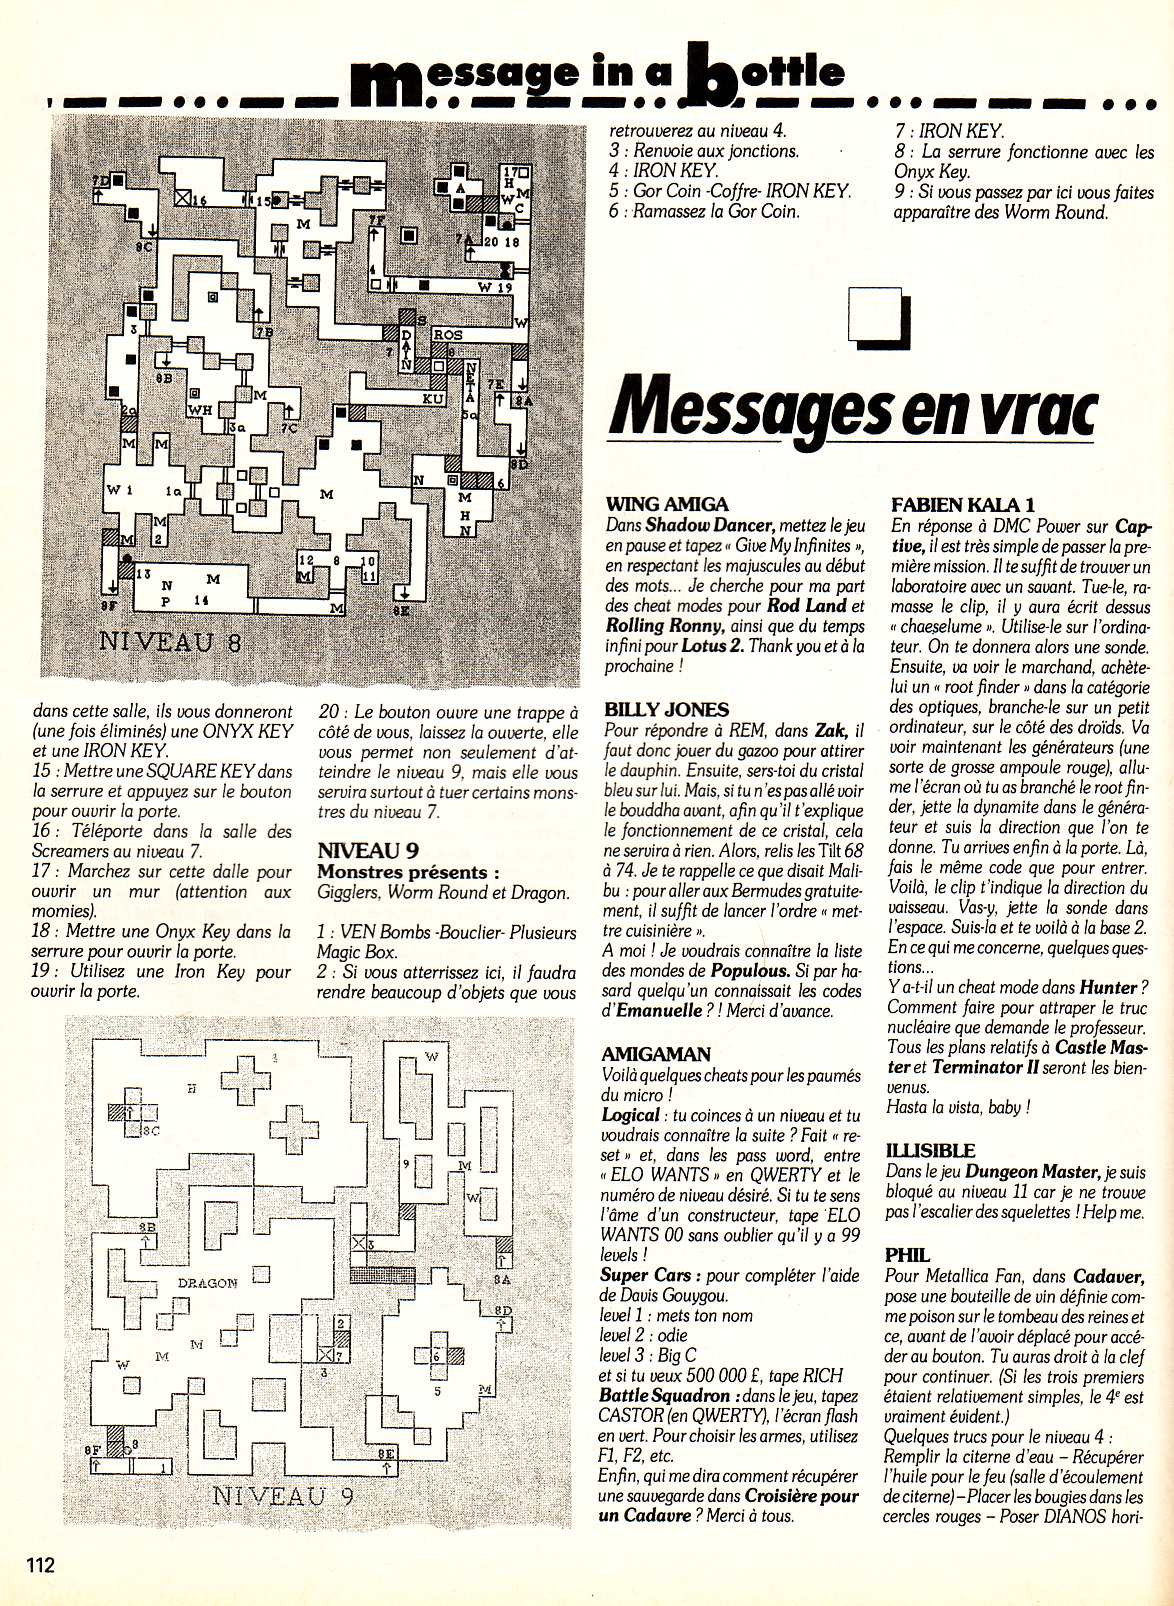 Chaos Strikes Back Guide published in French magazine 'Tilt', Issue #99, February 1992, Page 112